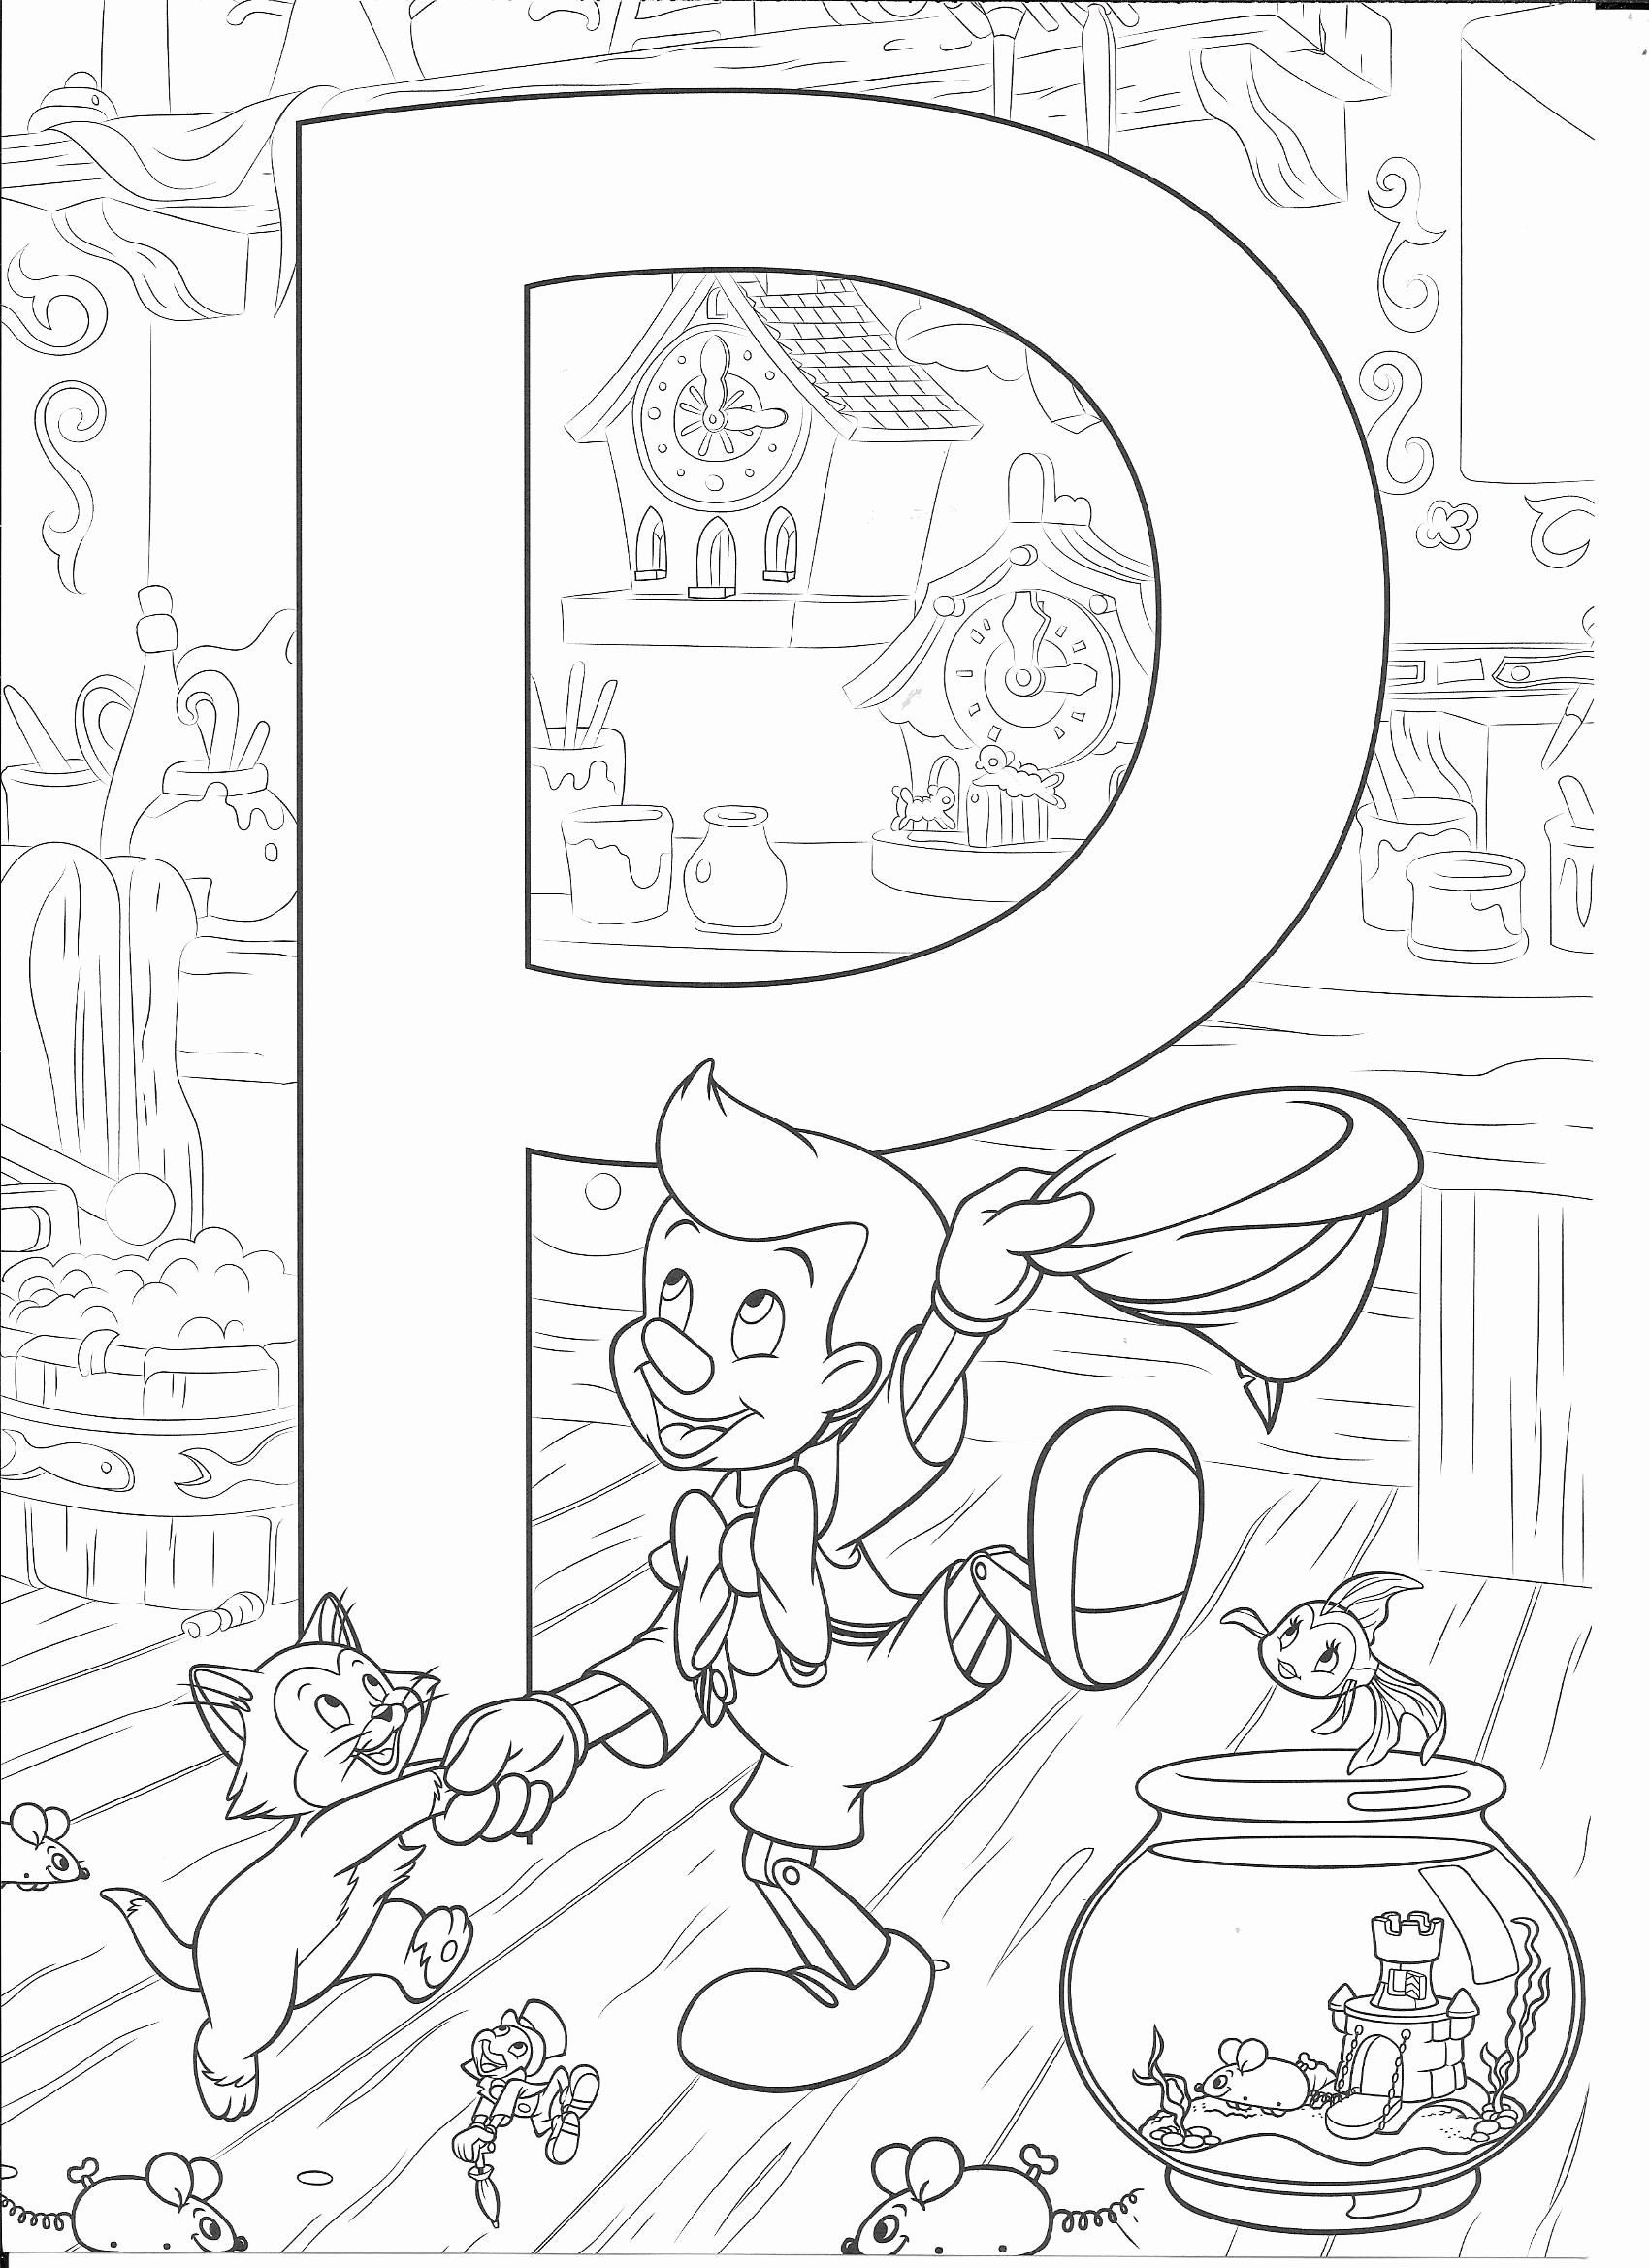 Coloring Book Alphabet J New P For Pinocchio Disney Coloring Pages Coloring Pages Gallery Abc Coloring Pages Disney Coloring Pages Disney Coloring Sheets